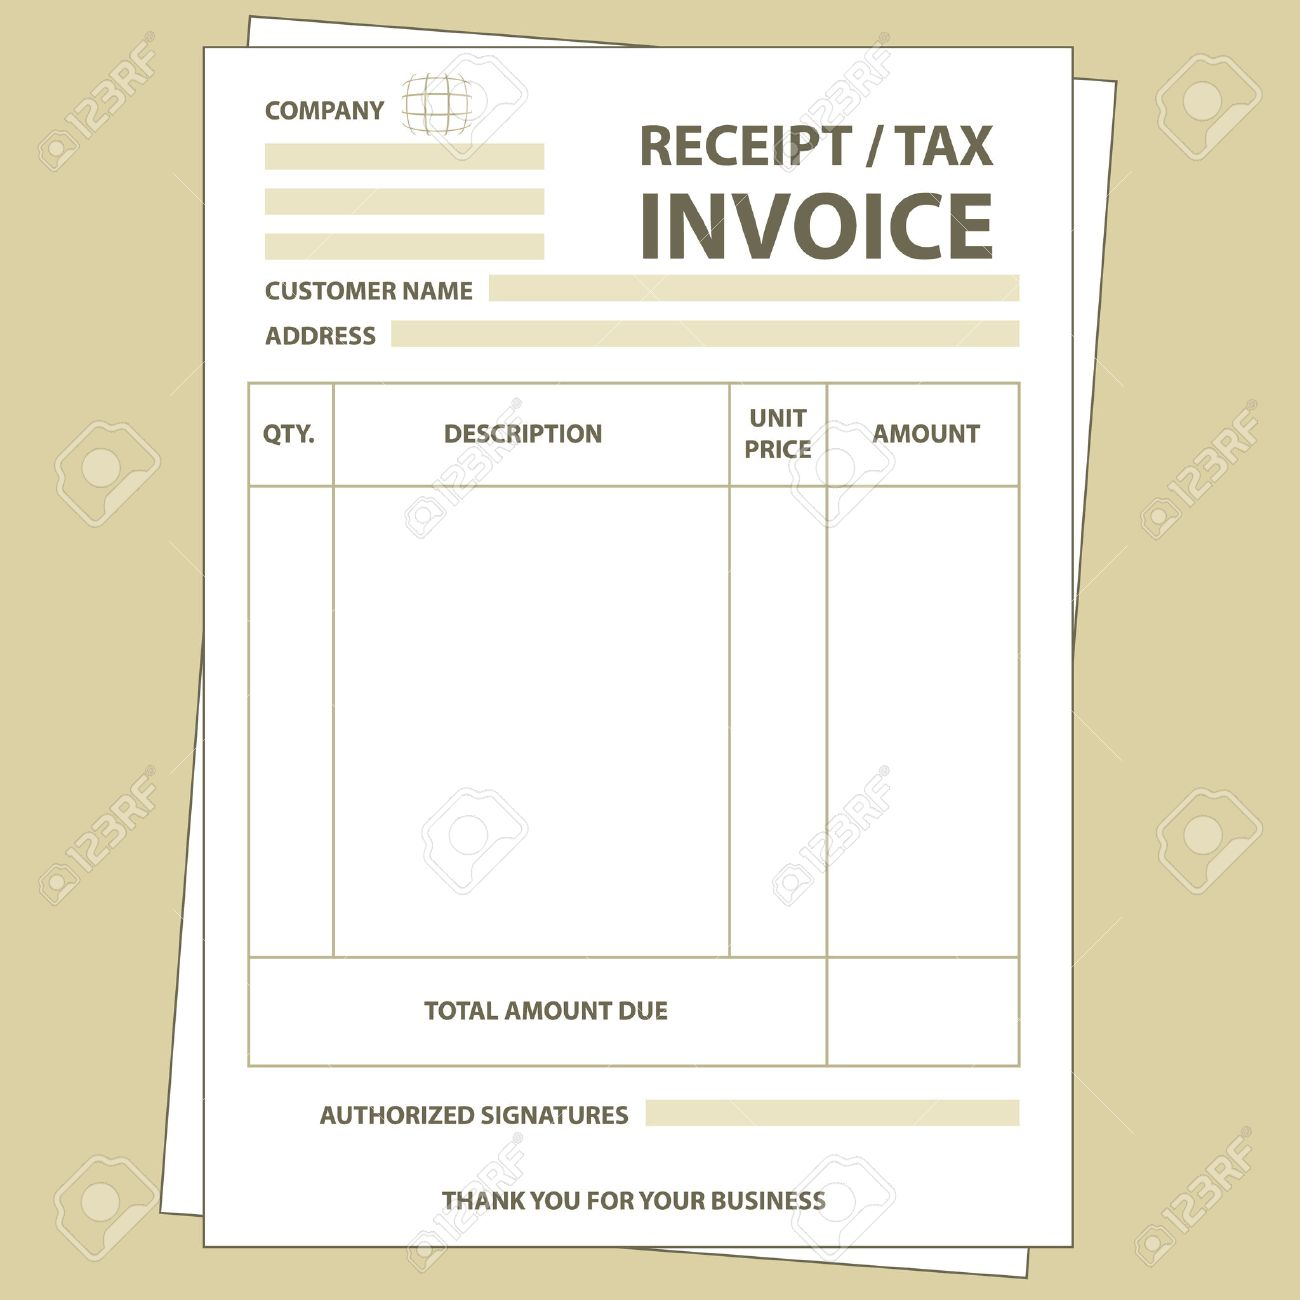 Australian Invoice  Receipts Cliparts Stock Vector And Royalty Free Receipts  Epson Receipt Printer Paper Excel with Best Buy Return Policy No Receipt Excel Receipts Illustration Of Unfill Paper Tax Invoice Form Illustration Example Of Cash Receipt Word